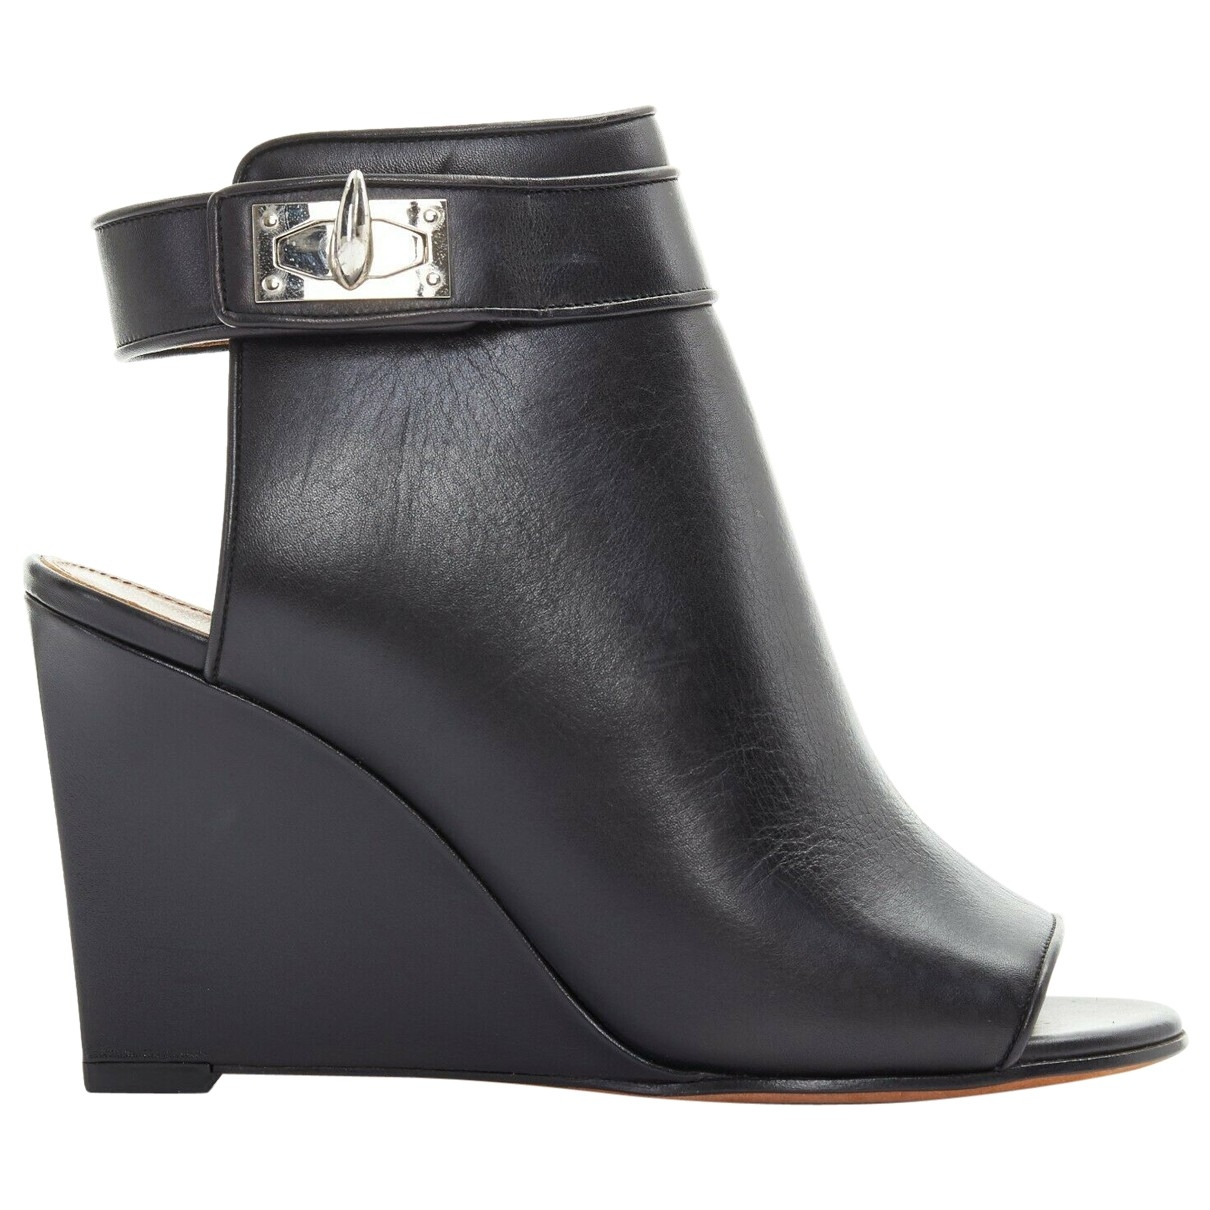 Givenchy \N Black Leather Ankle boots for Women 36 EU